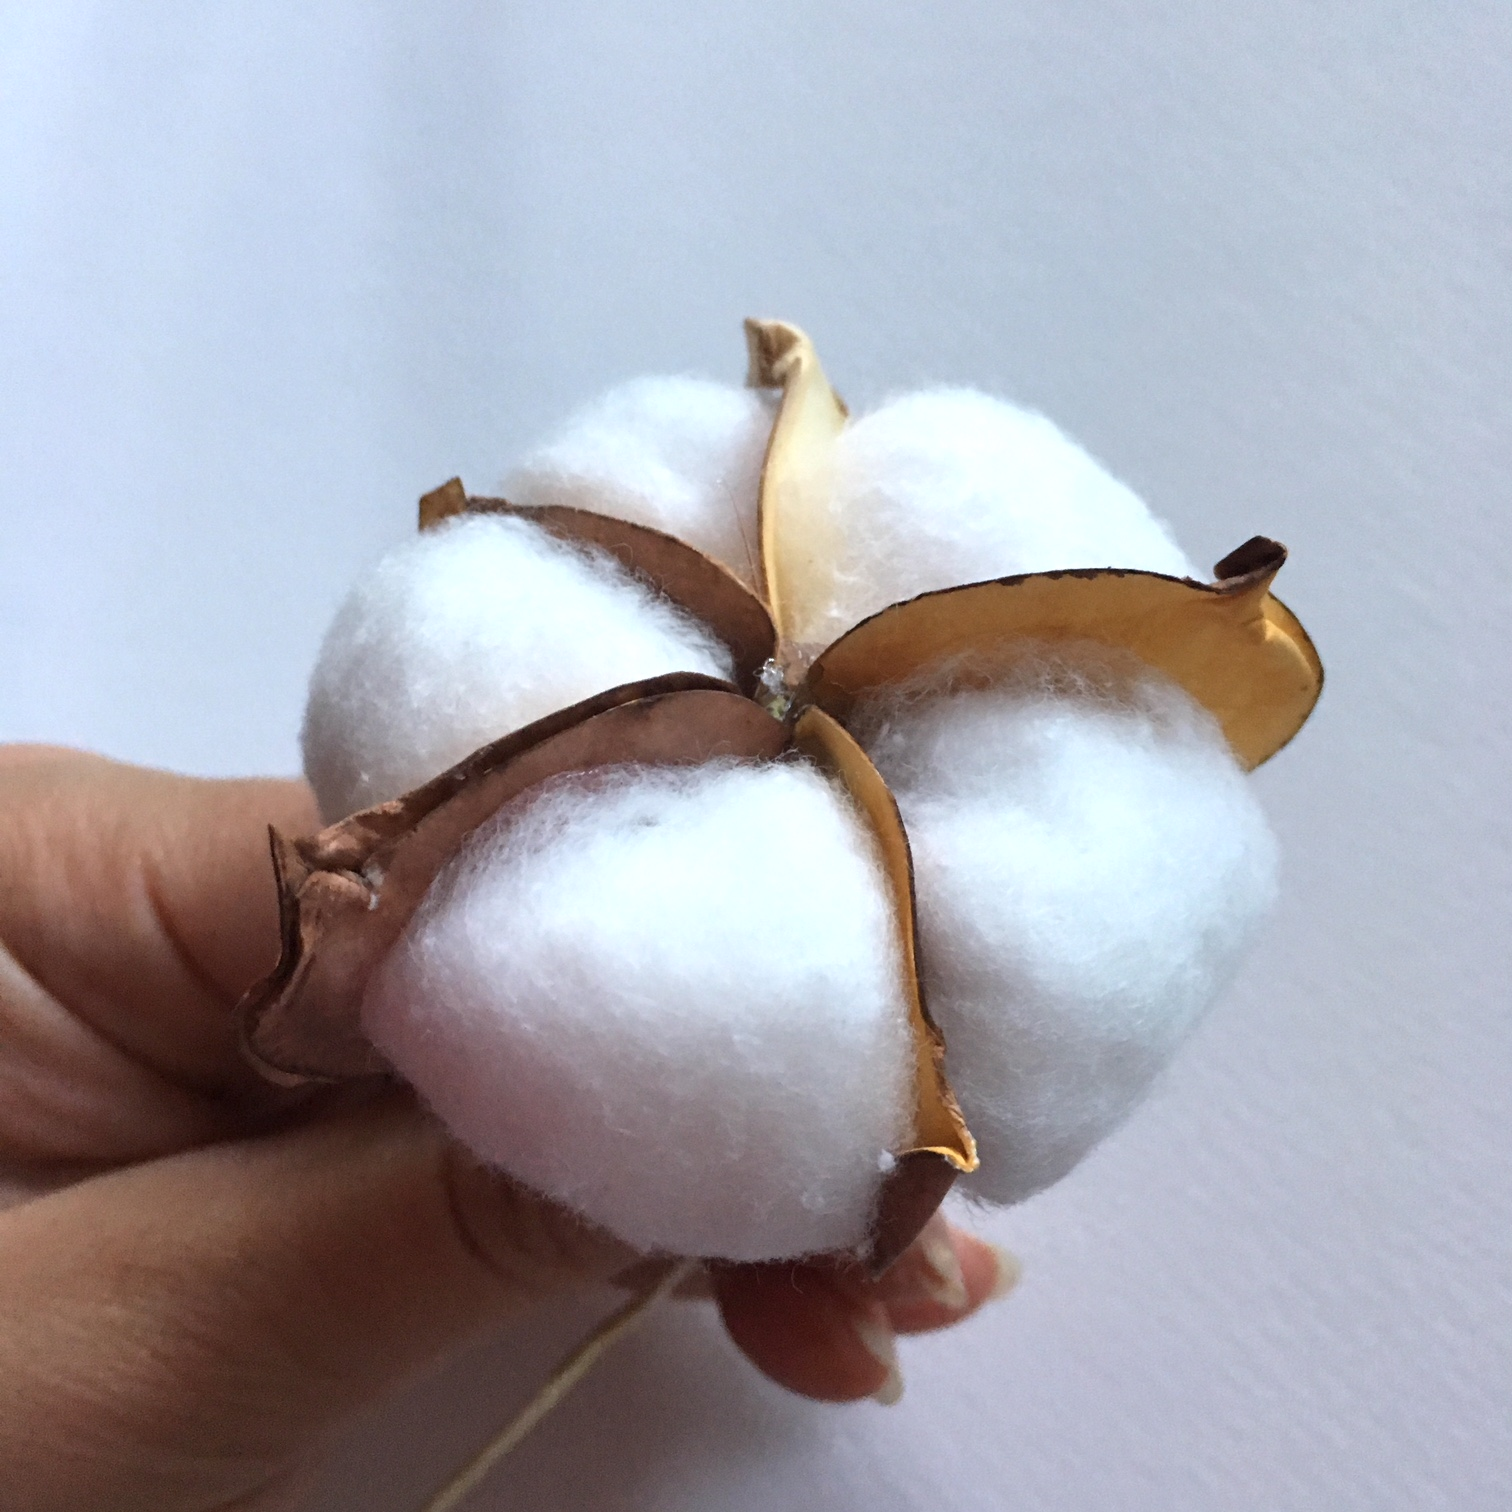 all the cotton balls glued between the leaves